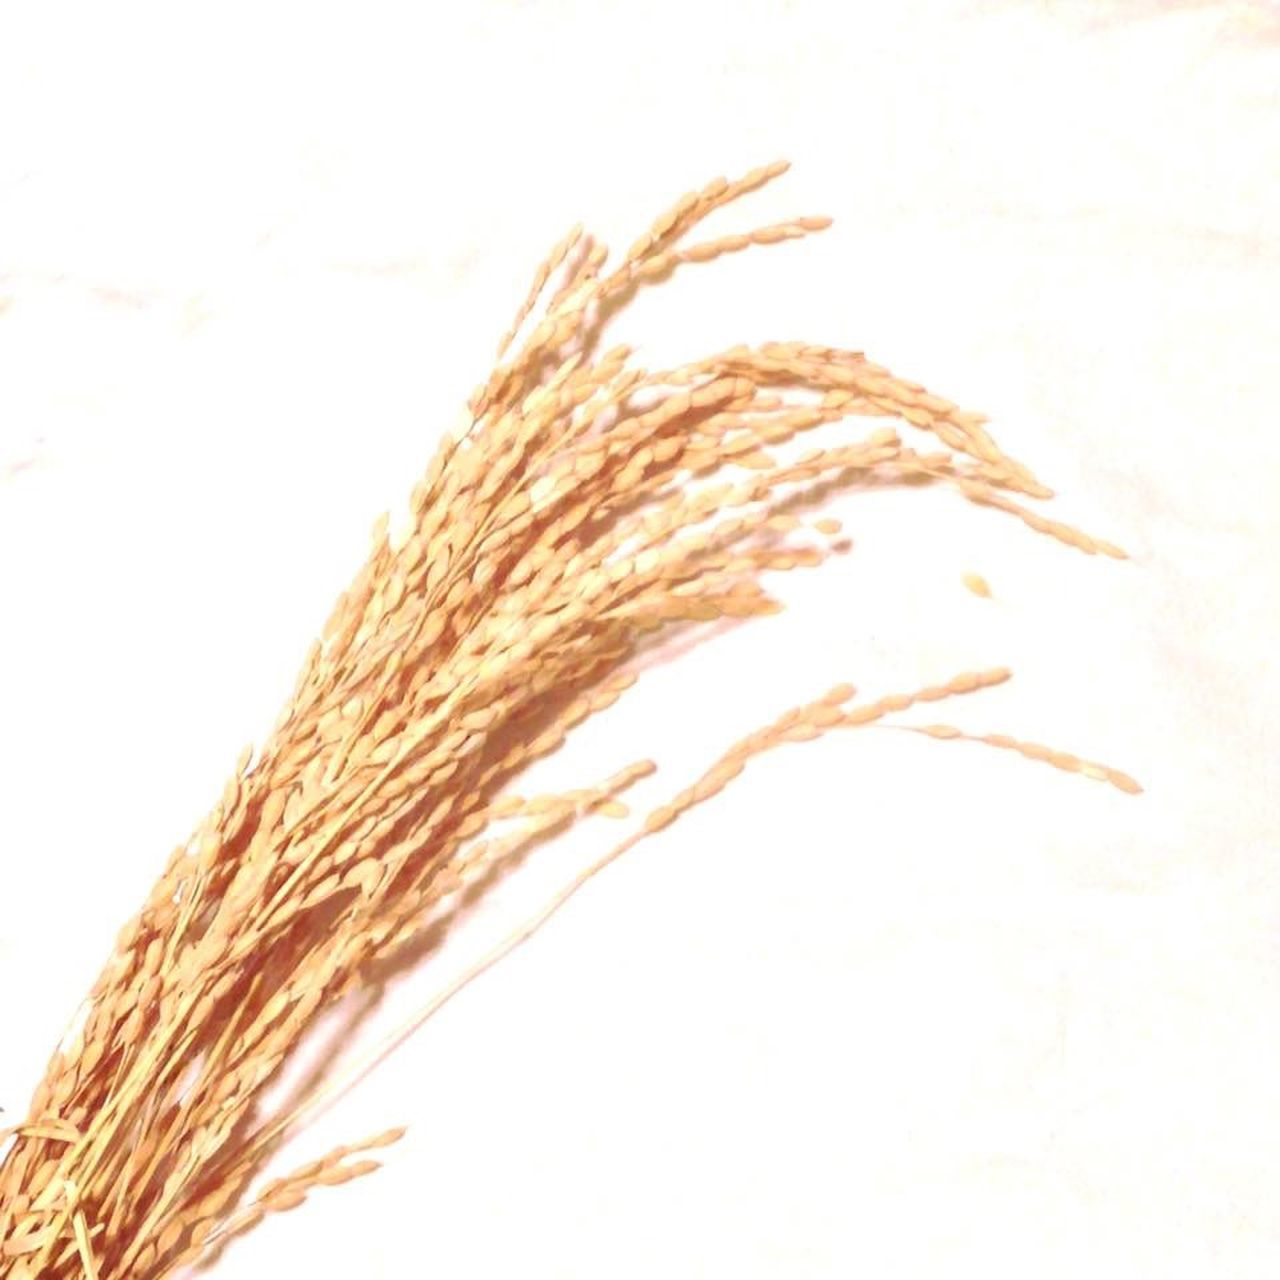 Rice Harvest 新嘗祭 Nov.23 Niinamesai is Japanese Traditional Harvest Festival held by the Emperor . The Emperor makes the Seoaon 's first Offering of Freshly harvested rice to the gods. White Brown EyeEmBestPics EyeEm Gallery Nature Plants Art Gratitude